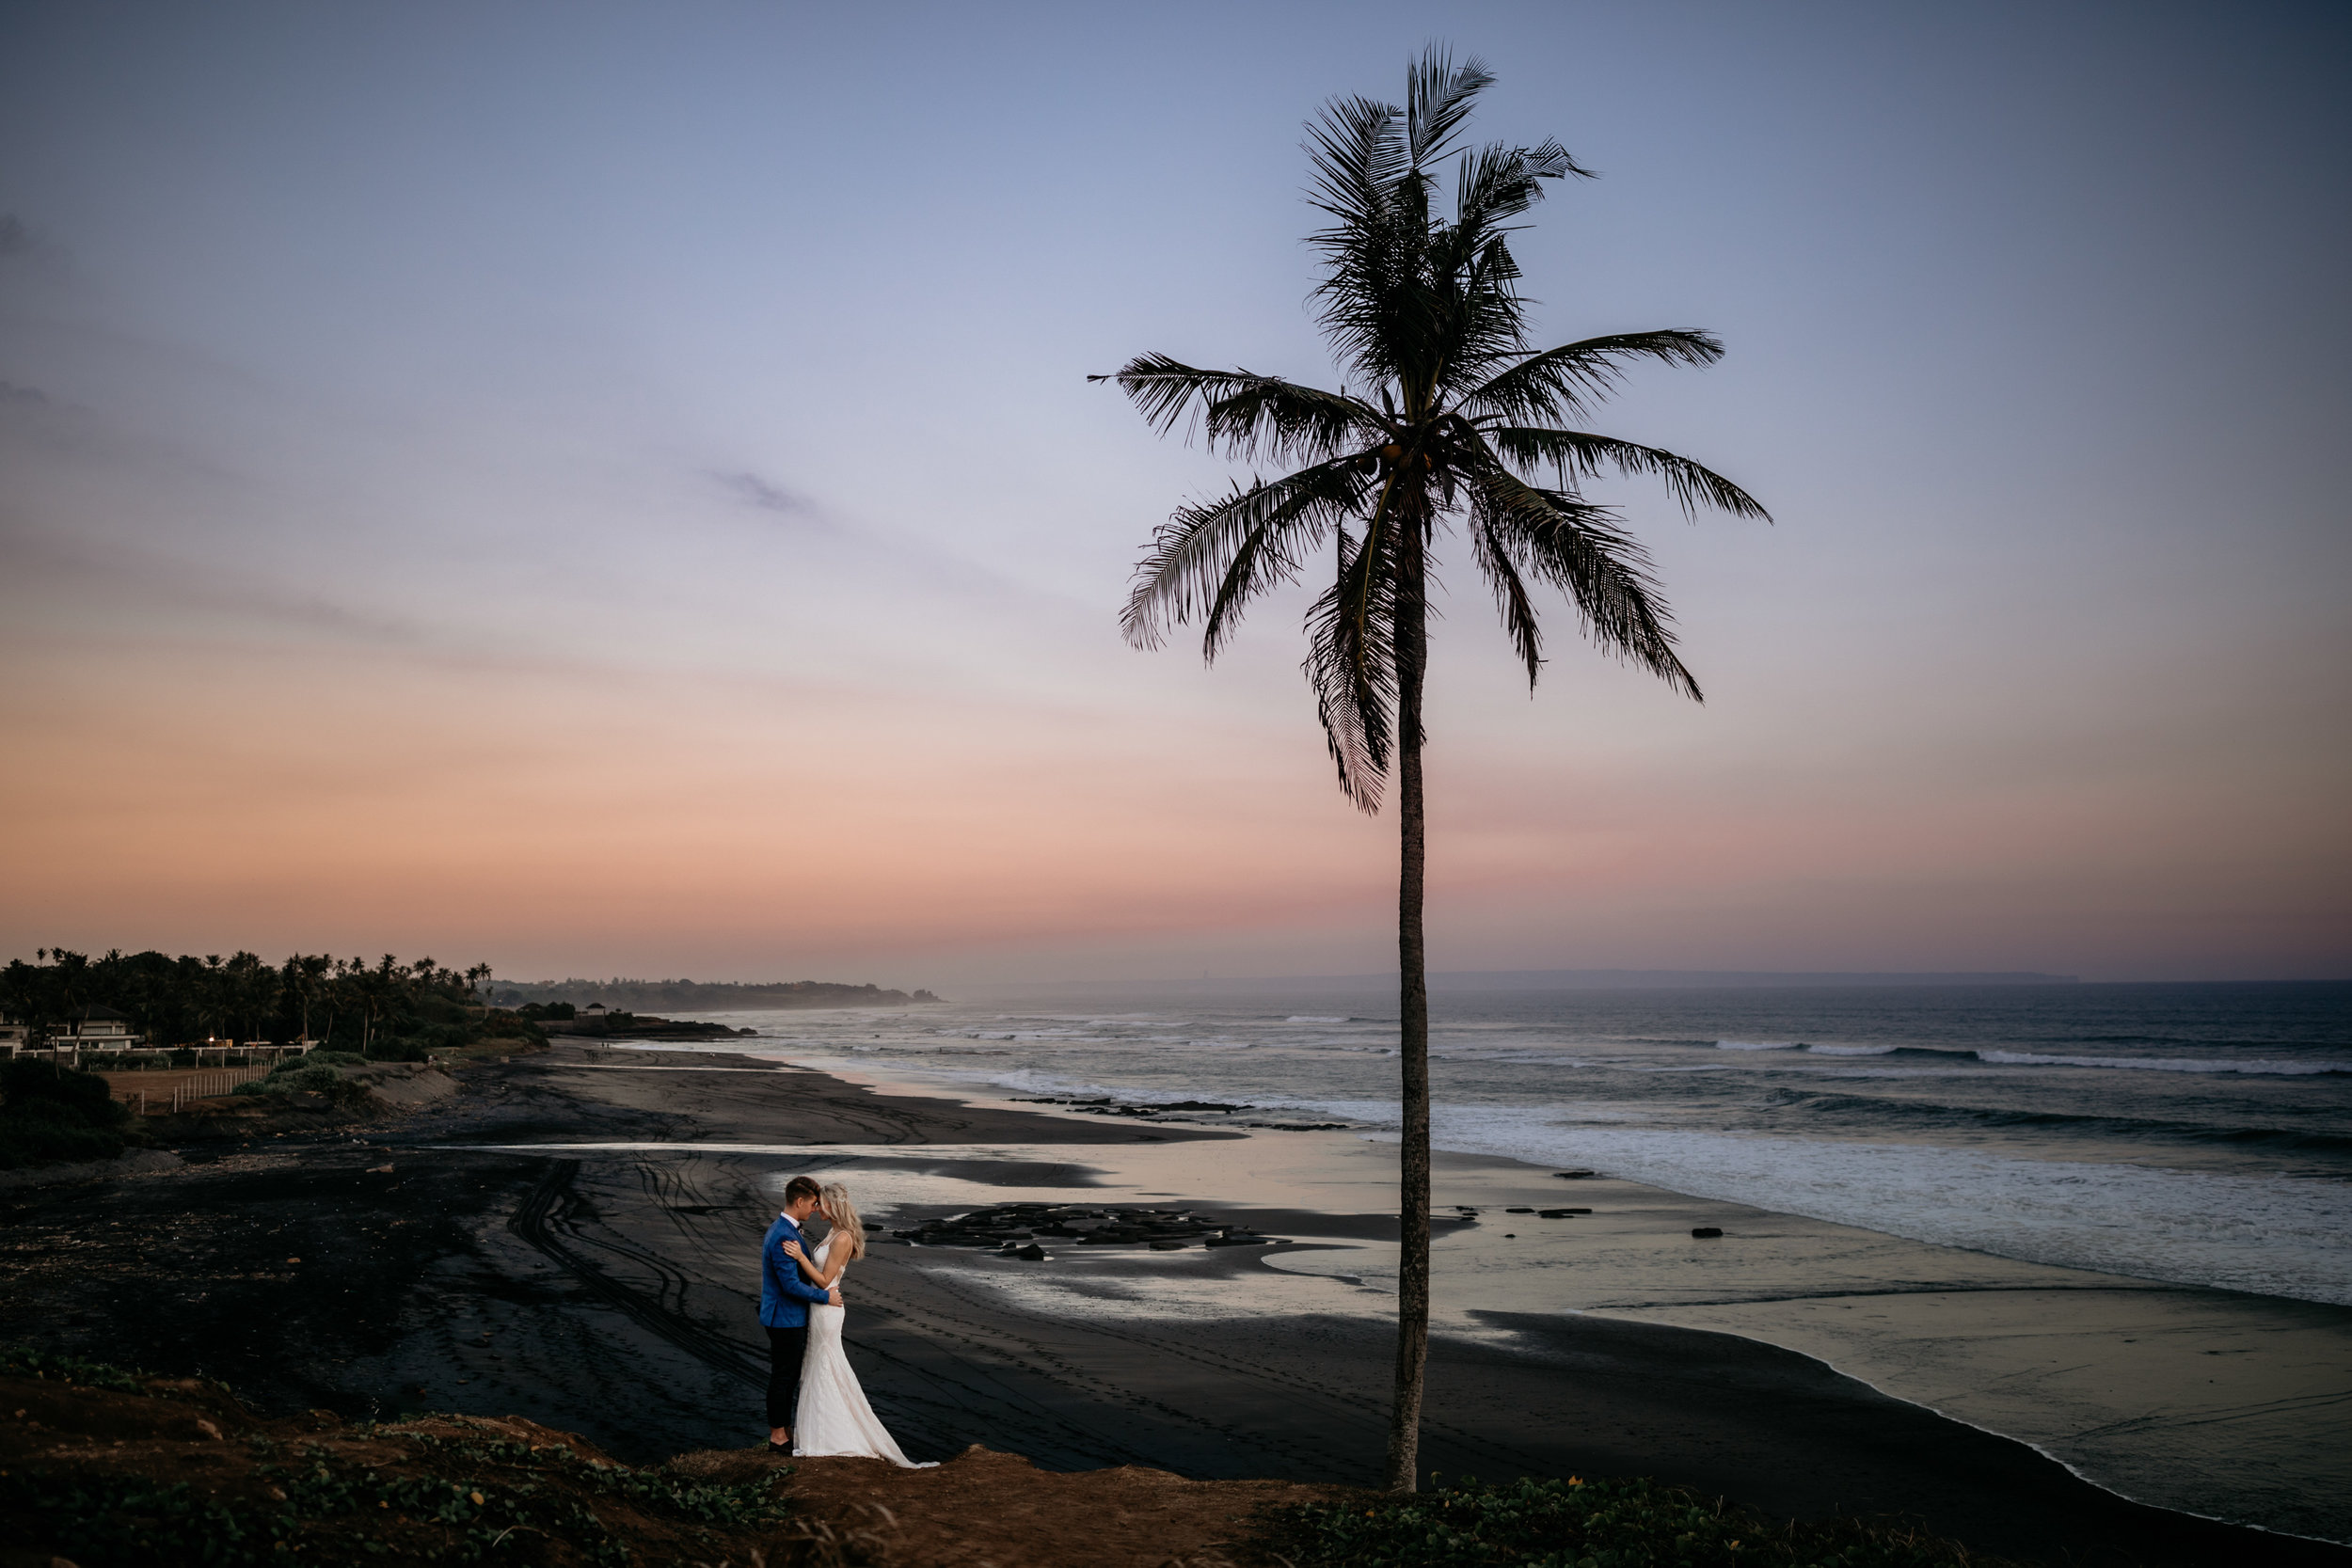 Bride and Groom share an intimate moment in Canggu, Bali.